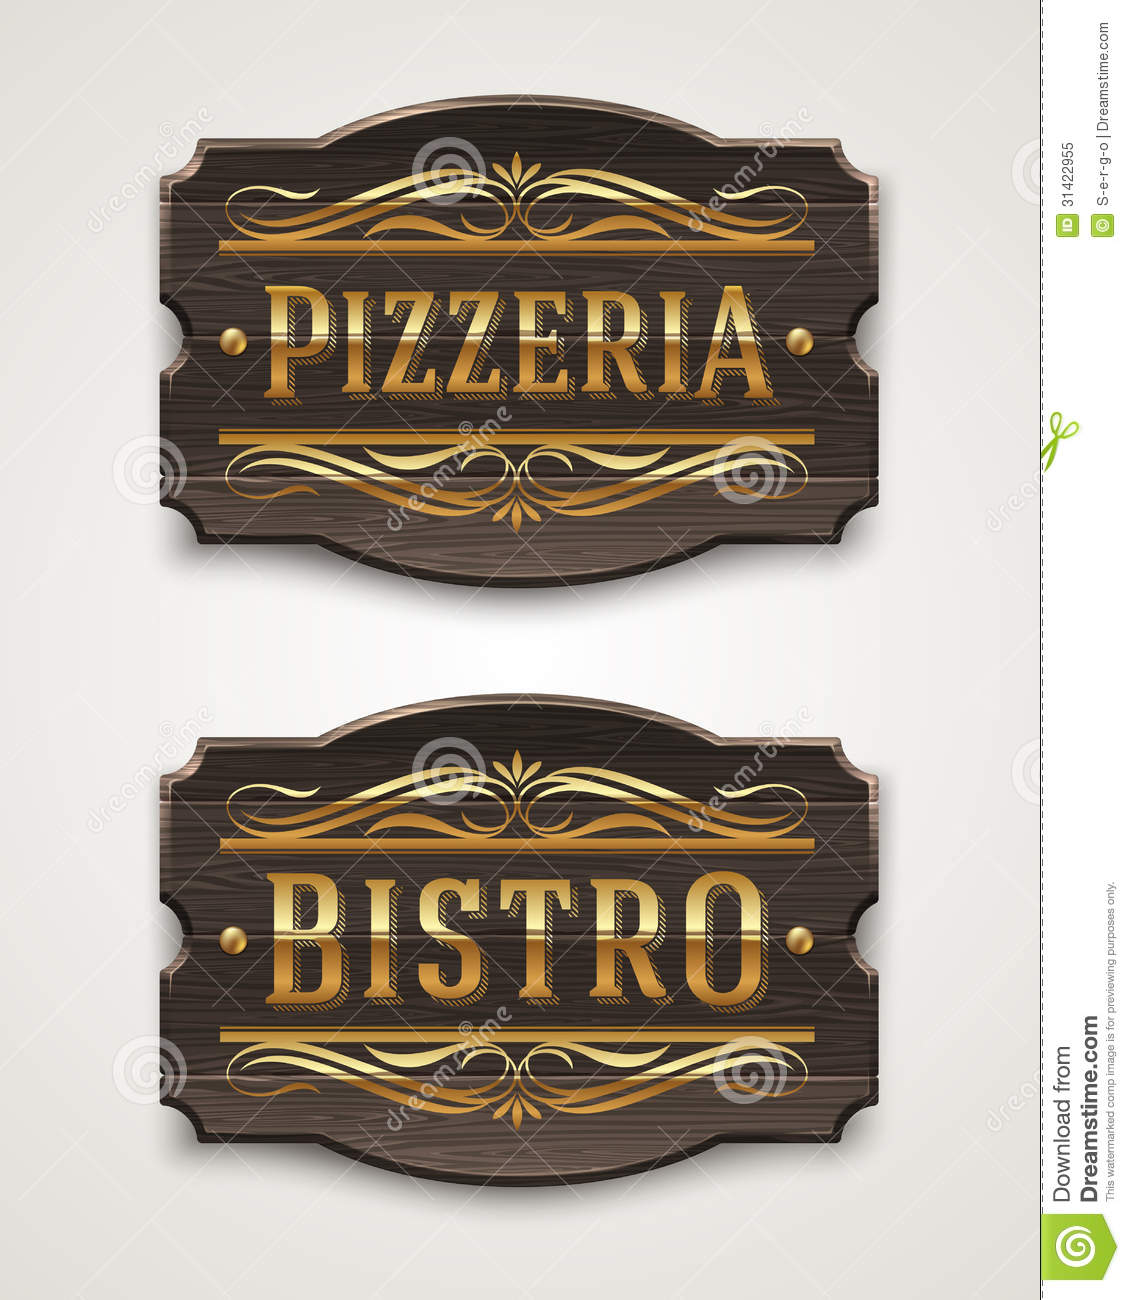 Vintage wooden signs for pizzeria and bistro royalty free stock photo image 31422955 - Decoratie pizzeria ...